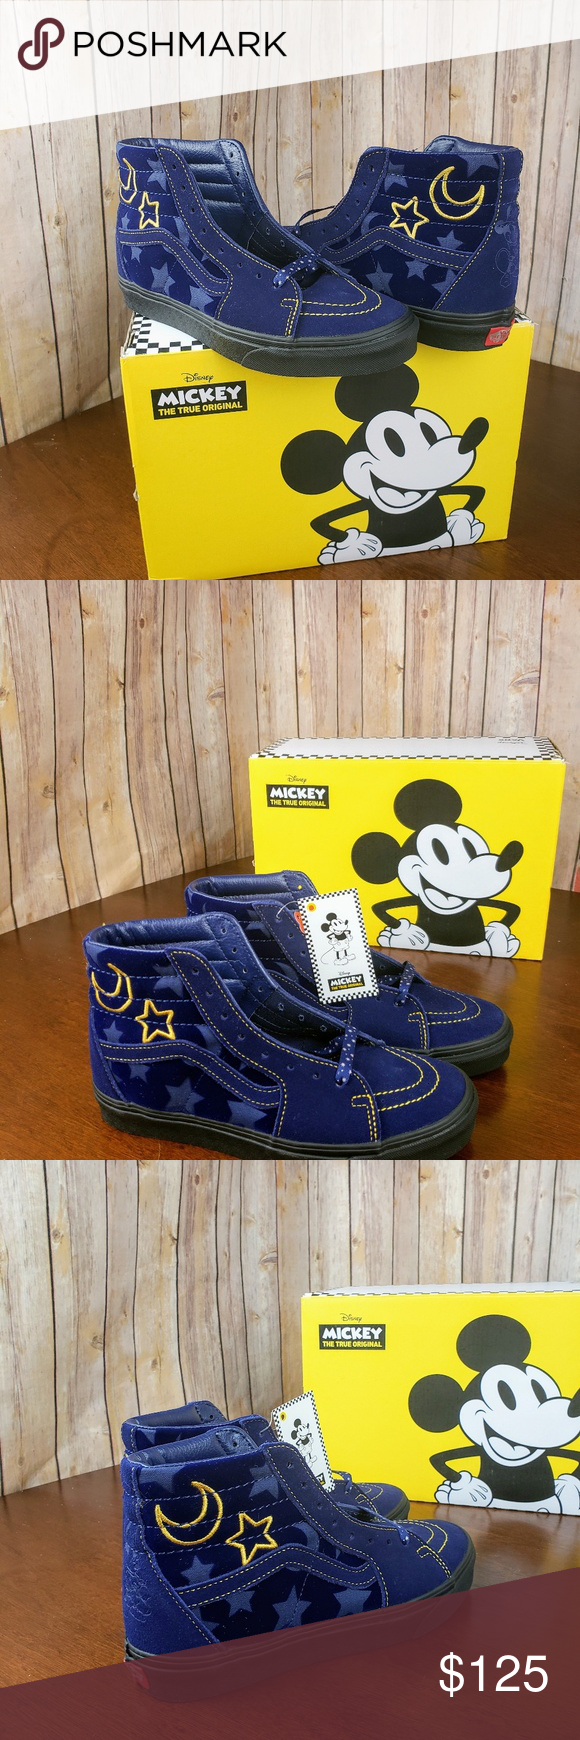 New Van s Sk8-Hi Disney Sorcerer s Appre Brand New with Oh boy! Vans and  Disney return with a full collection of footwear and apparel to celebrate  the 90th ... dadeb16990f